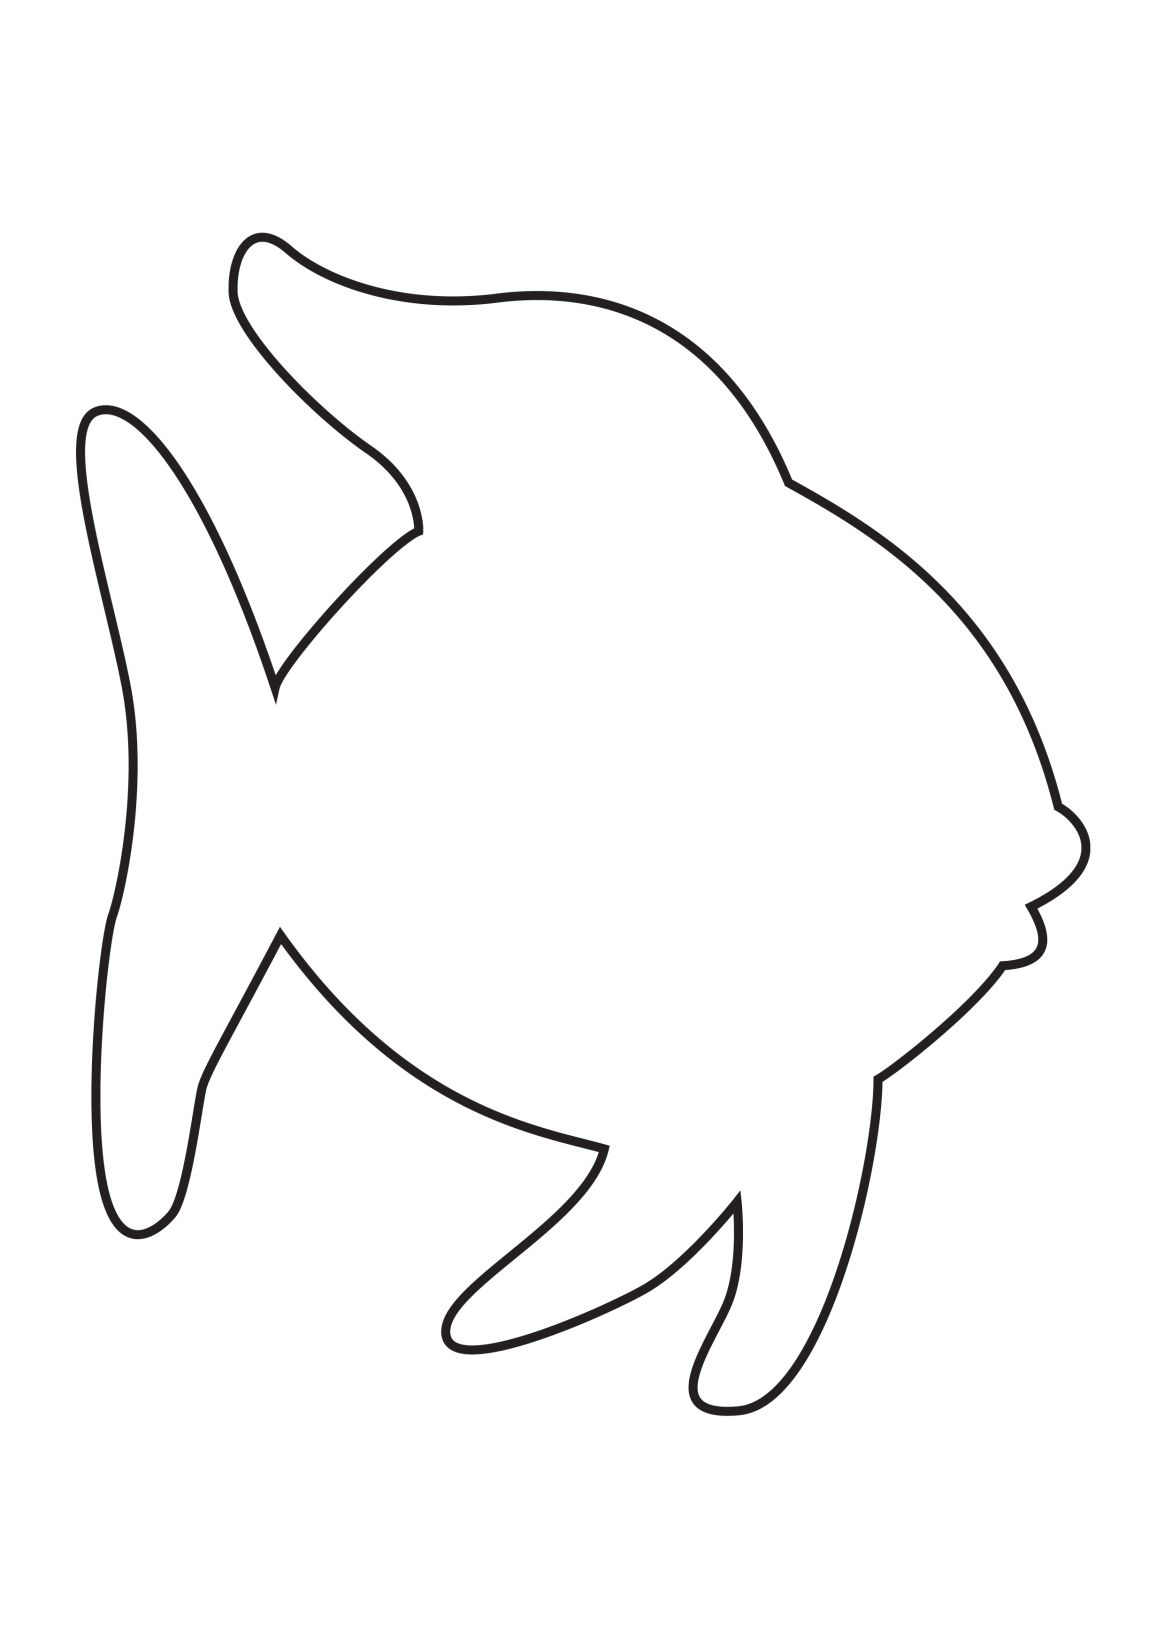 Rainbow Fish Template